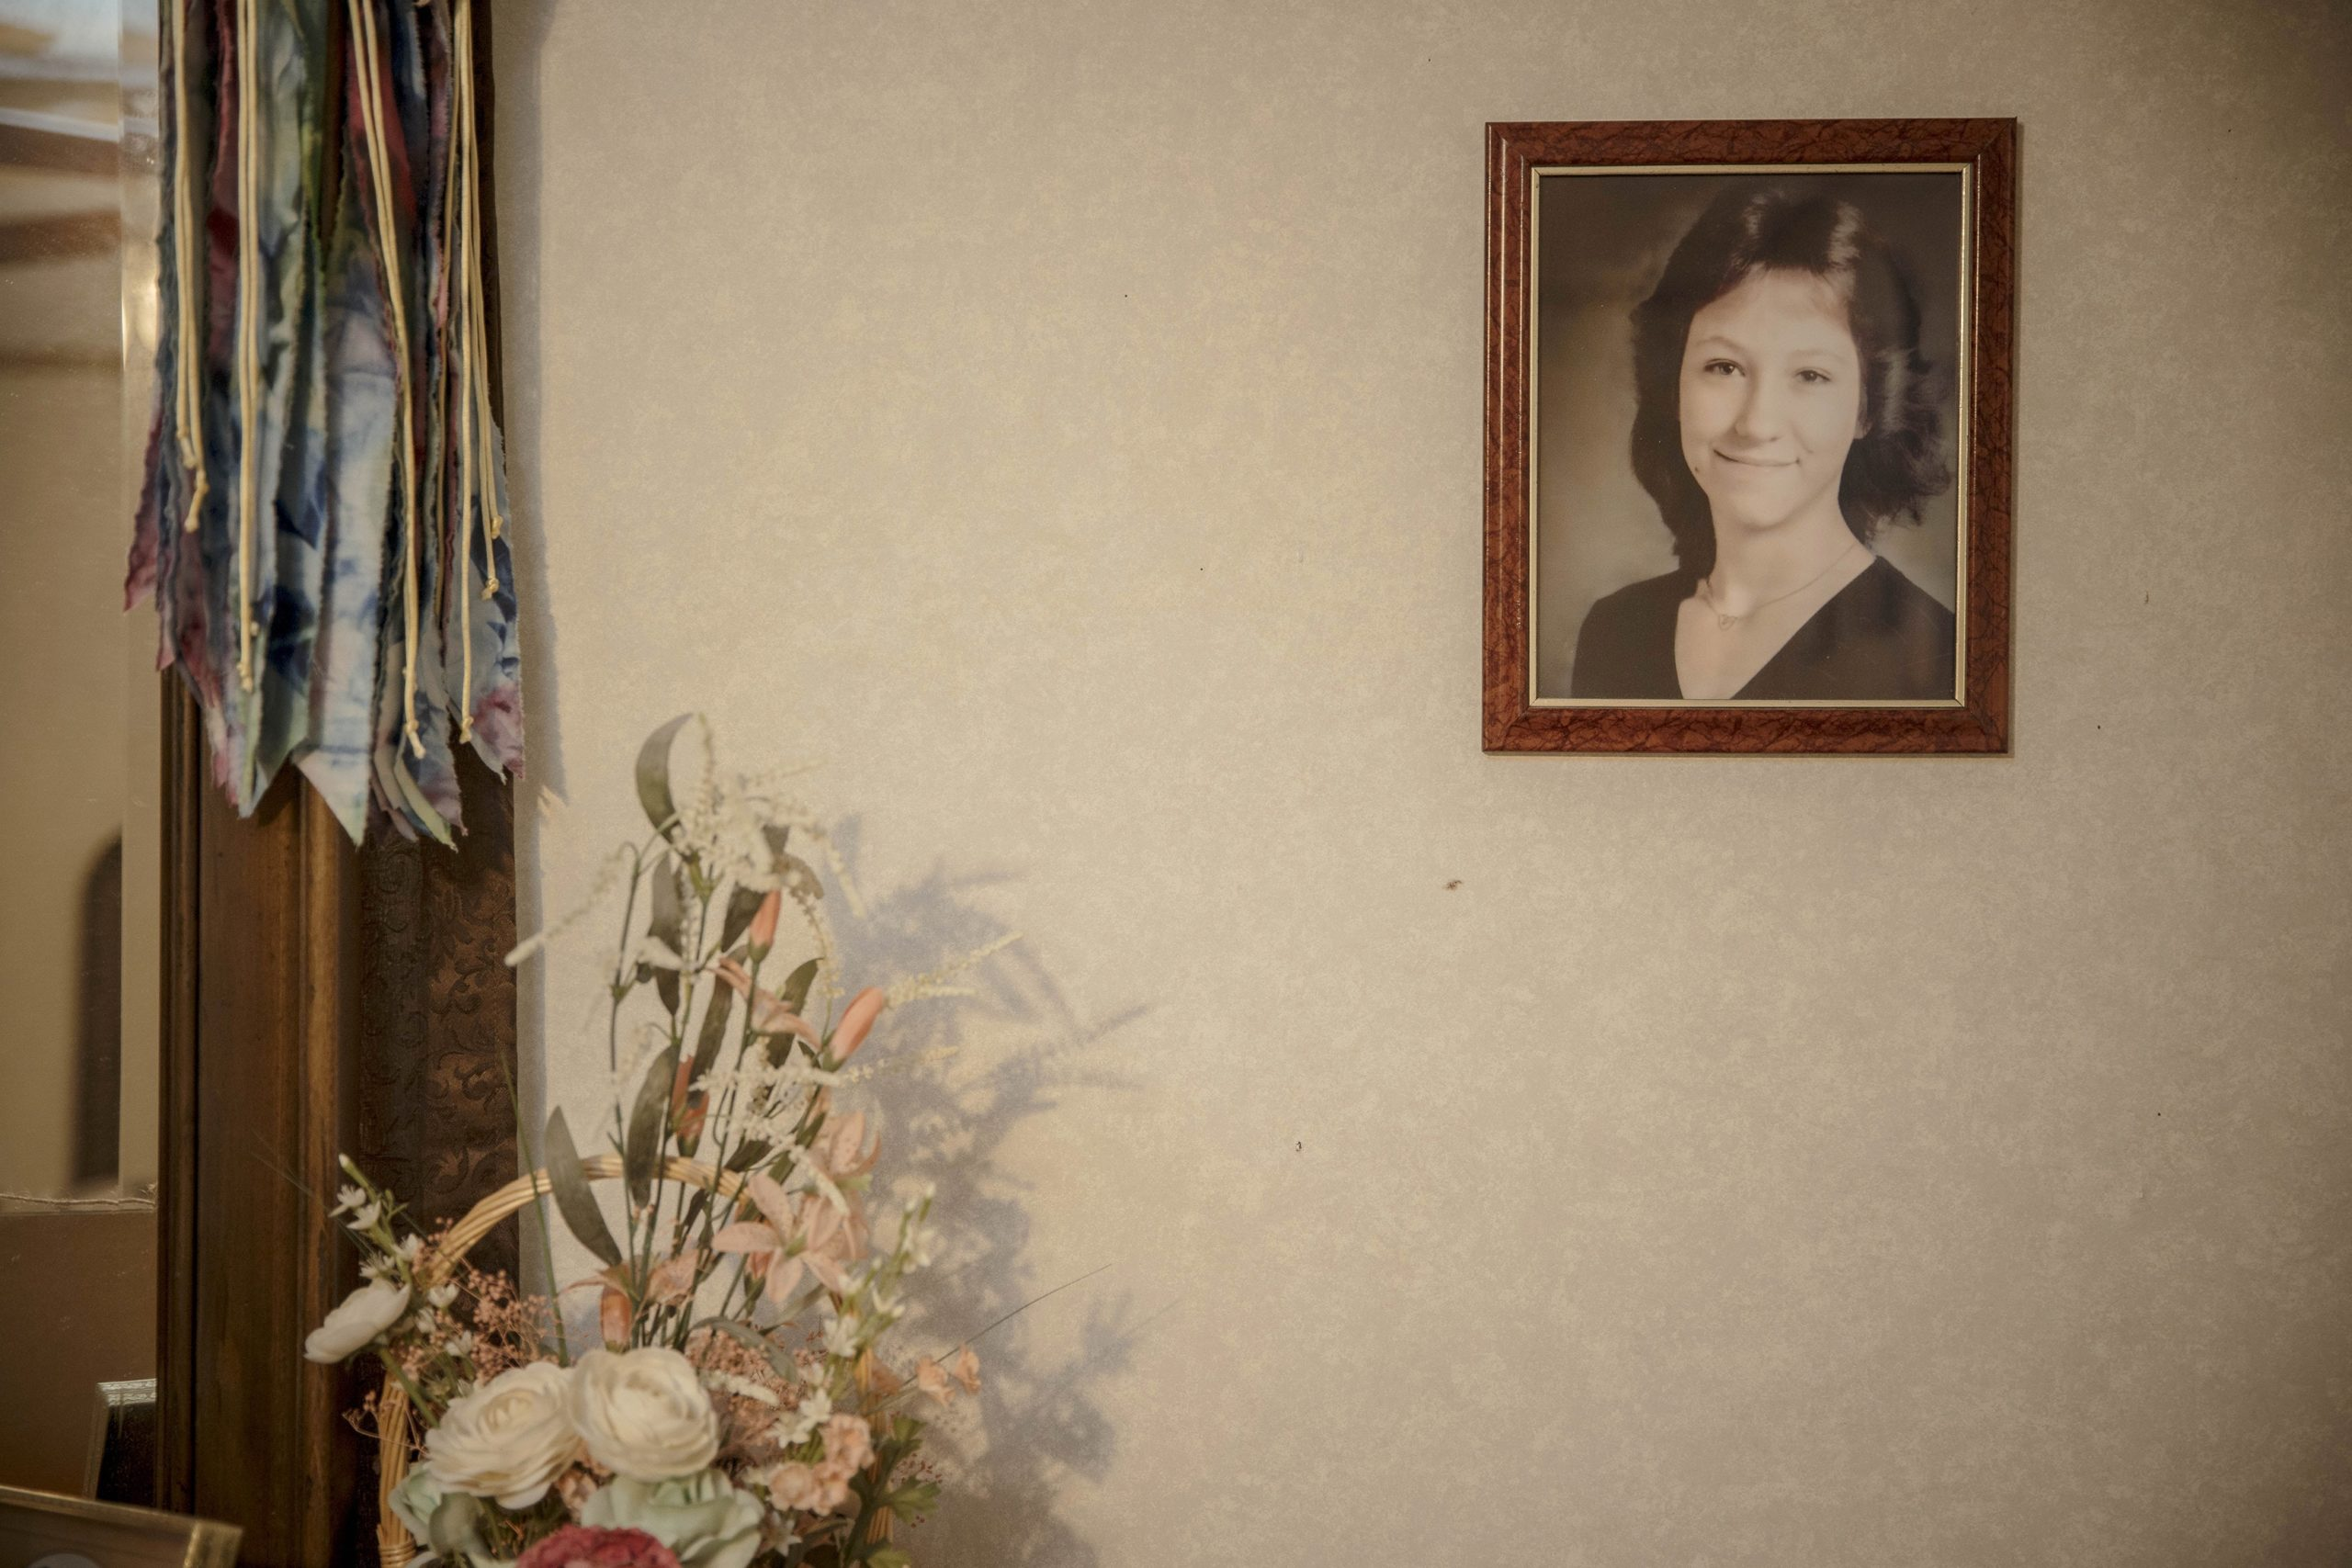 A photograph of Nancy Mueller hangs at the home of her mother, Earlene Peterson, in Hector, Ark., on Oct. 18, 2019. A white supremacist was convicted of murdering Mueller, her husband and her daughter, but the victims' family members, the prosecutor and the judge have all said the death sentence scheduled to be carried out in December  was too arbitrary to justify. (Andrea Morales/The New York Times)